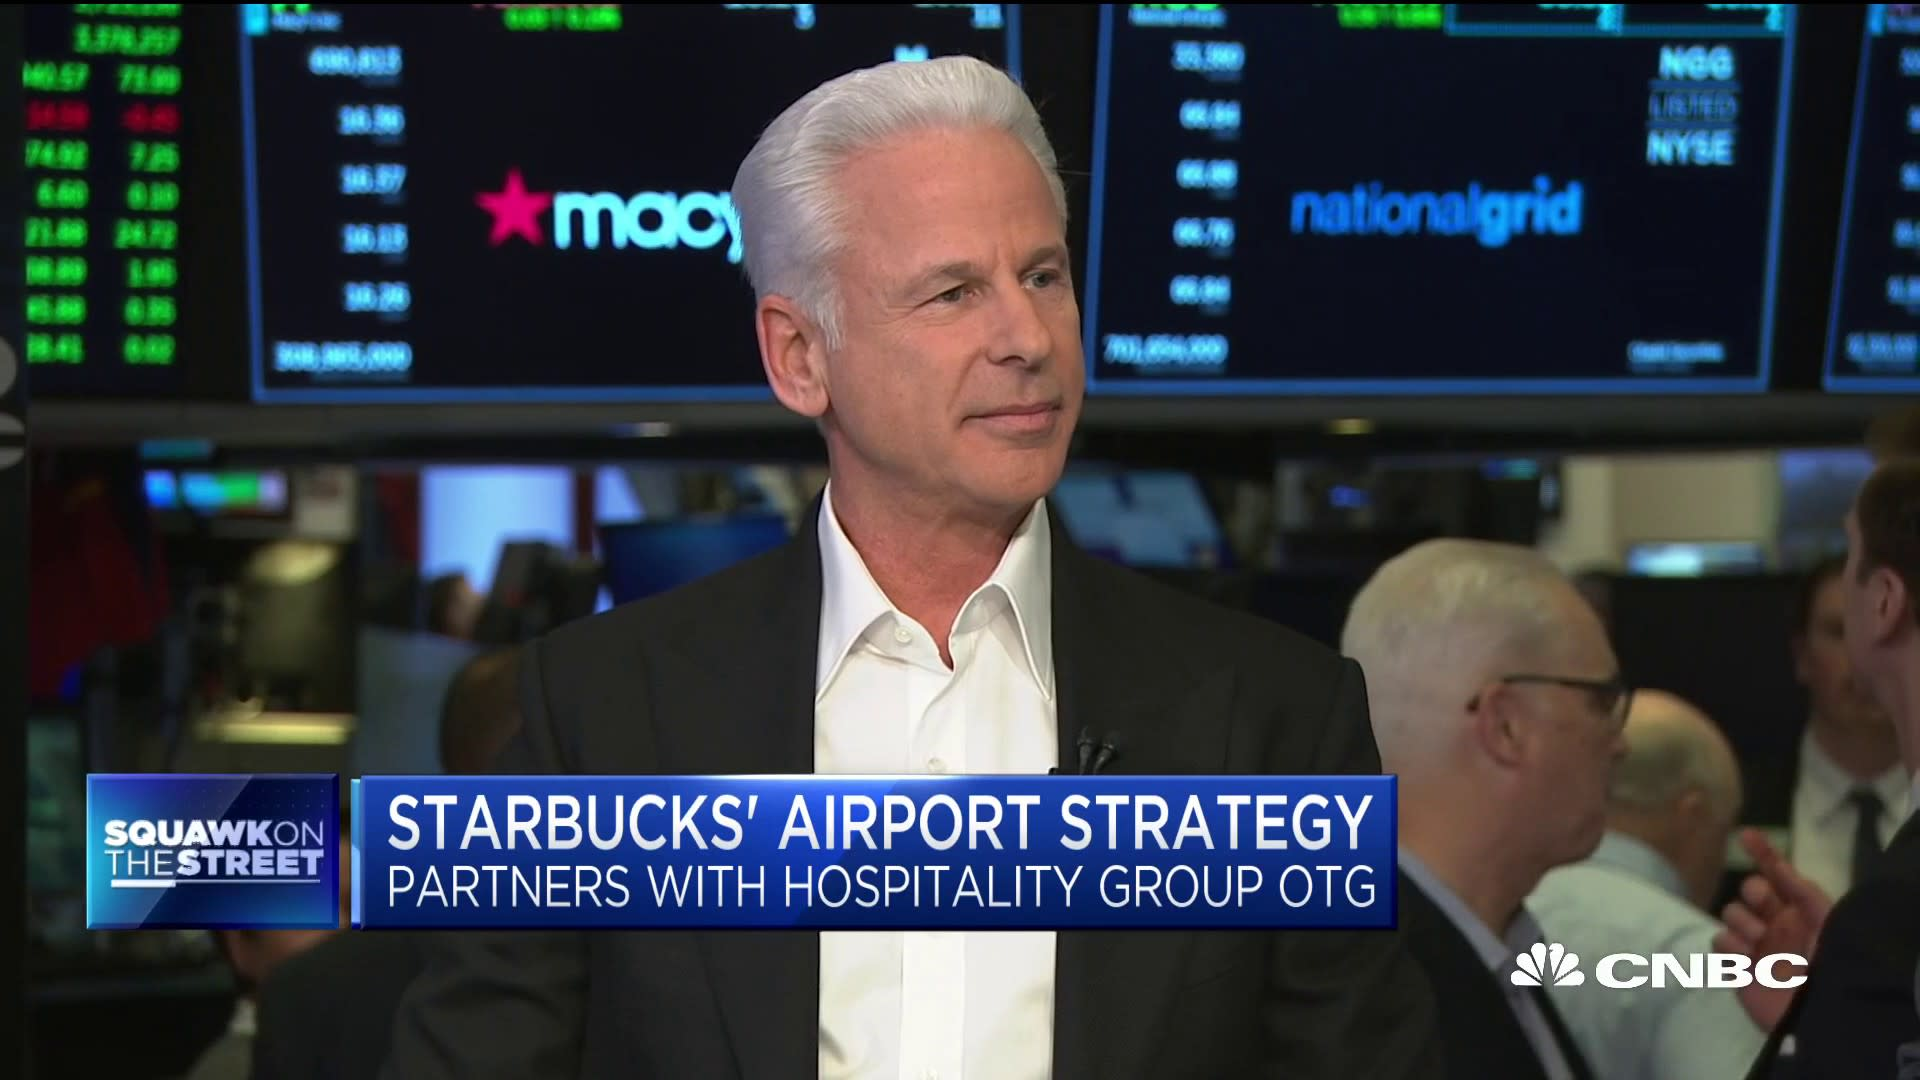 Hospitality Group Otg Ceo On Partnering With Starbucks To Improve Airport Experience photo